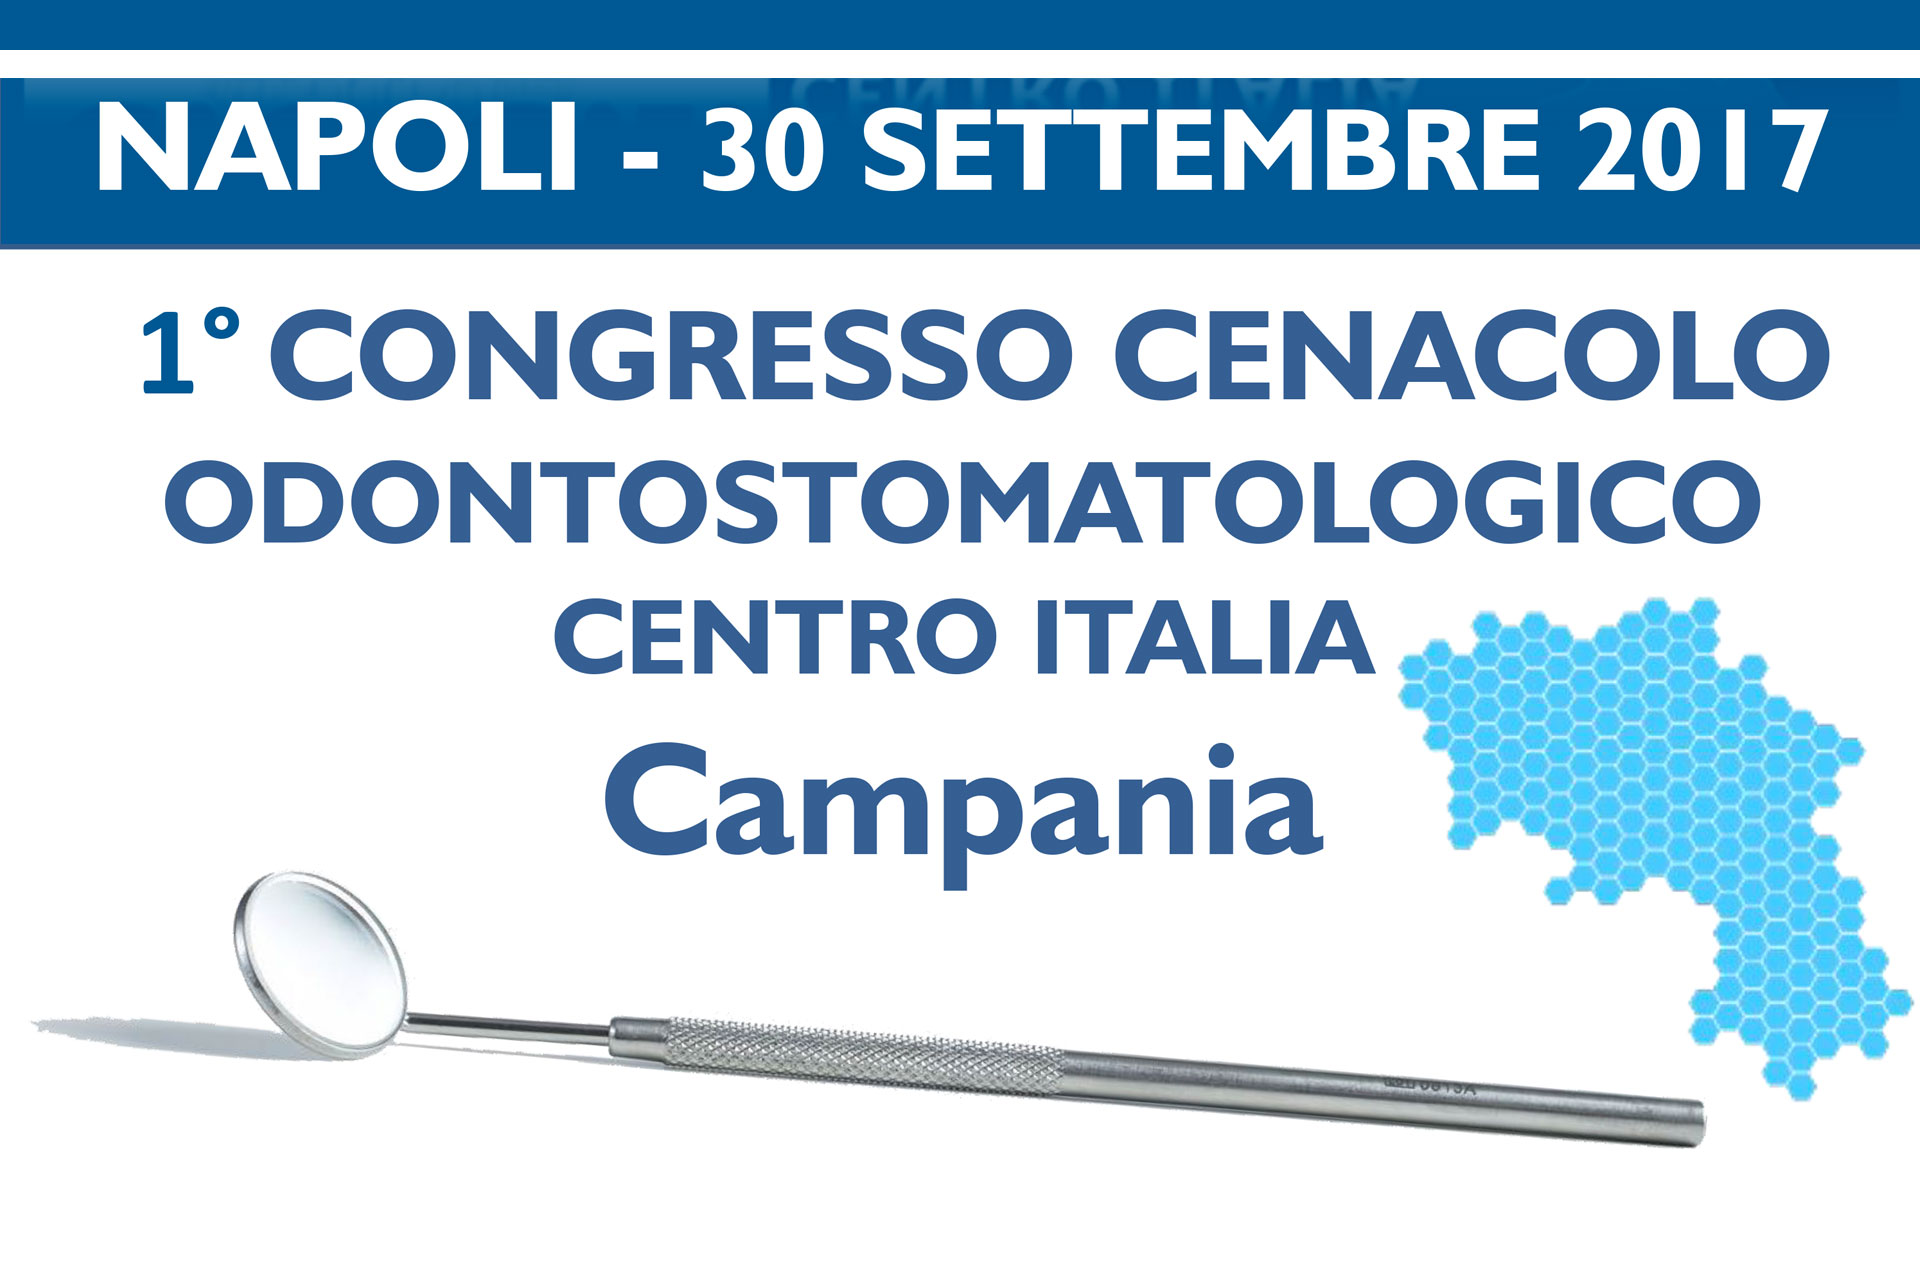 Dental congress Campania dentistry bioservice matrix